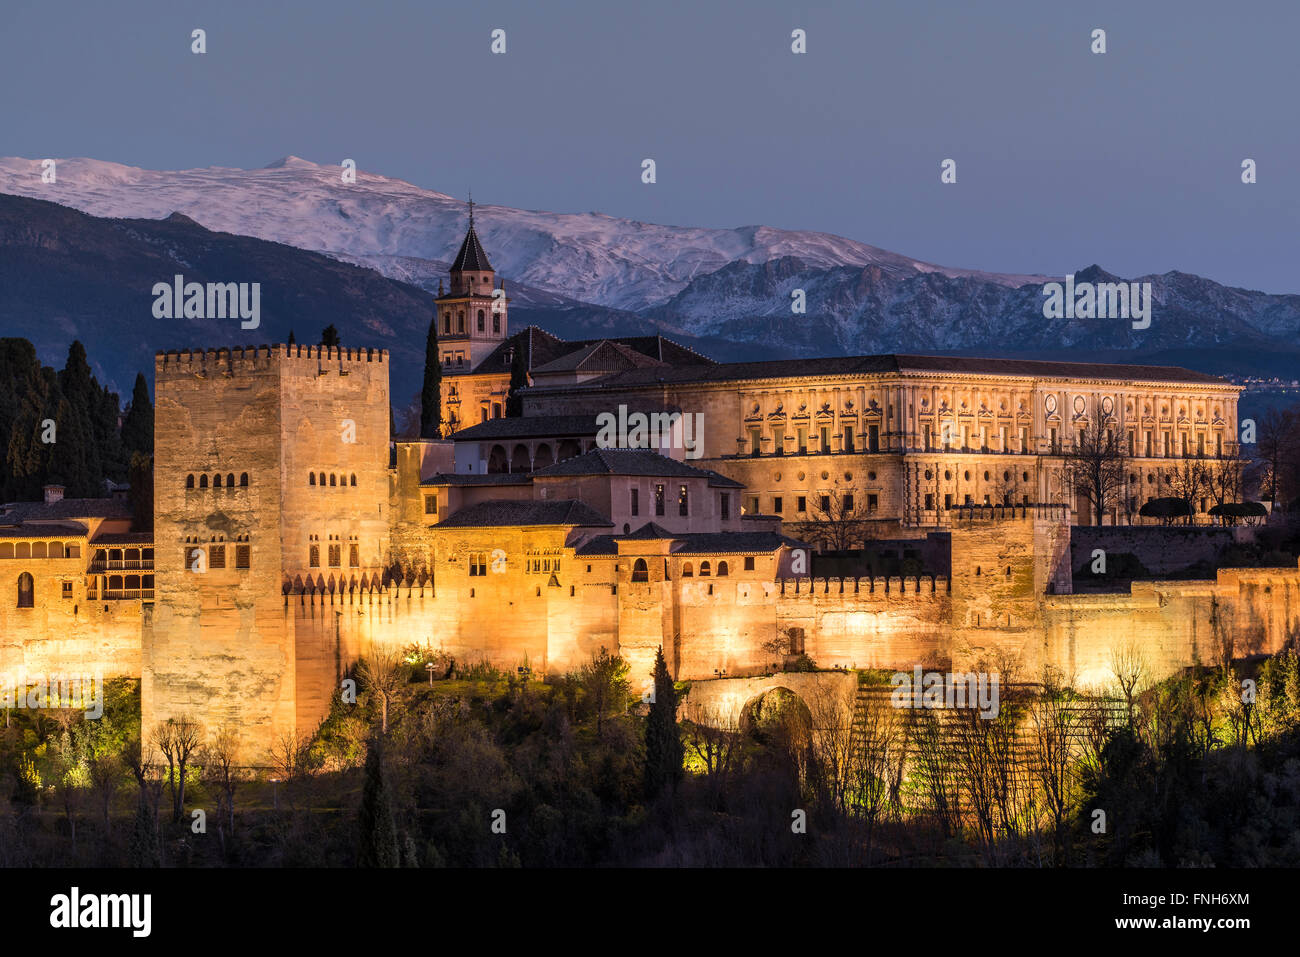 View at dusk of Alhambra palace with the snowy Sierra Nevada in the background, Granada, Andalusia, Spain - Stock Image